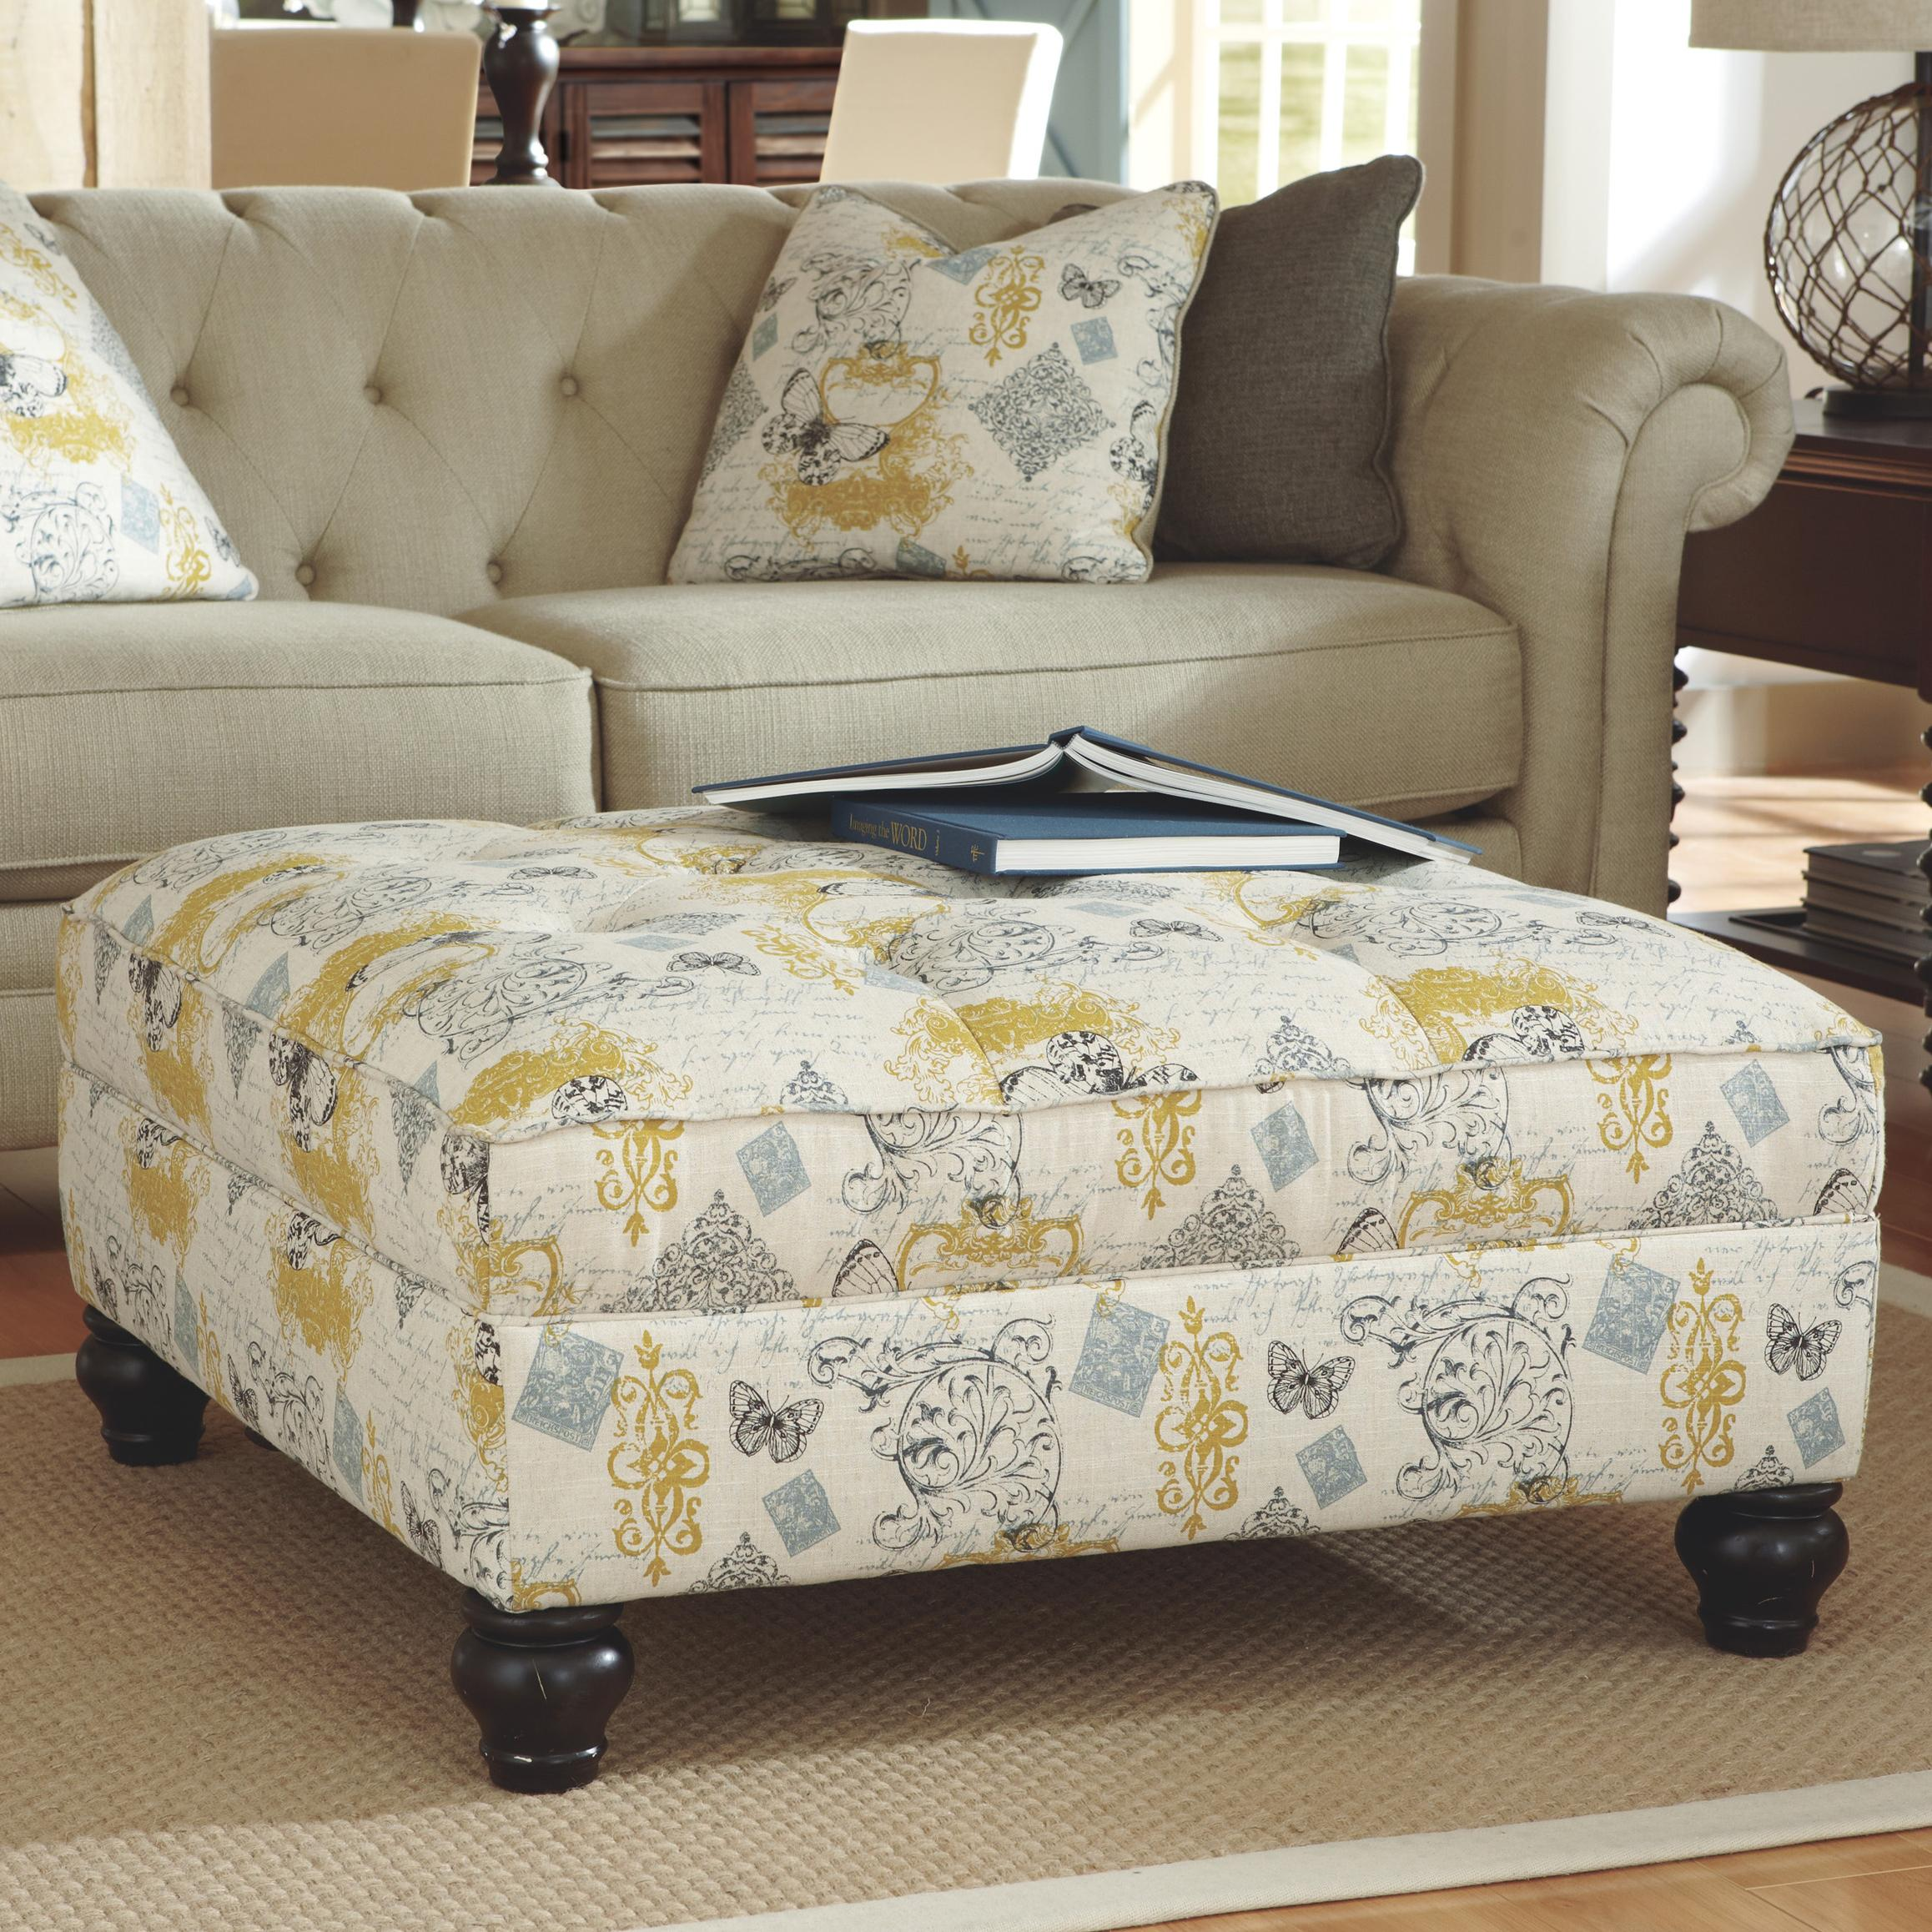 Ashley Furniture Hindell Park Oversized Accent Ottoman - Item Number: 1680408